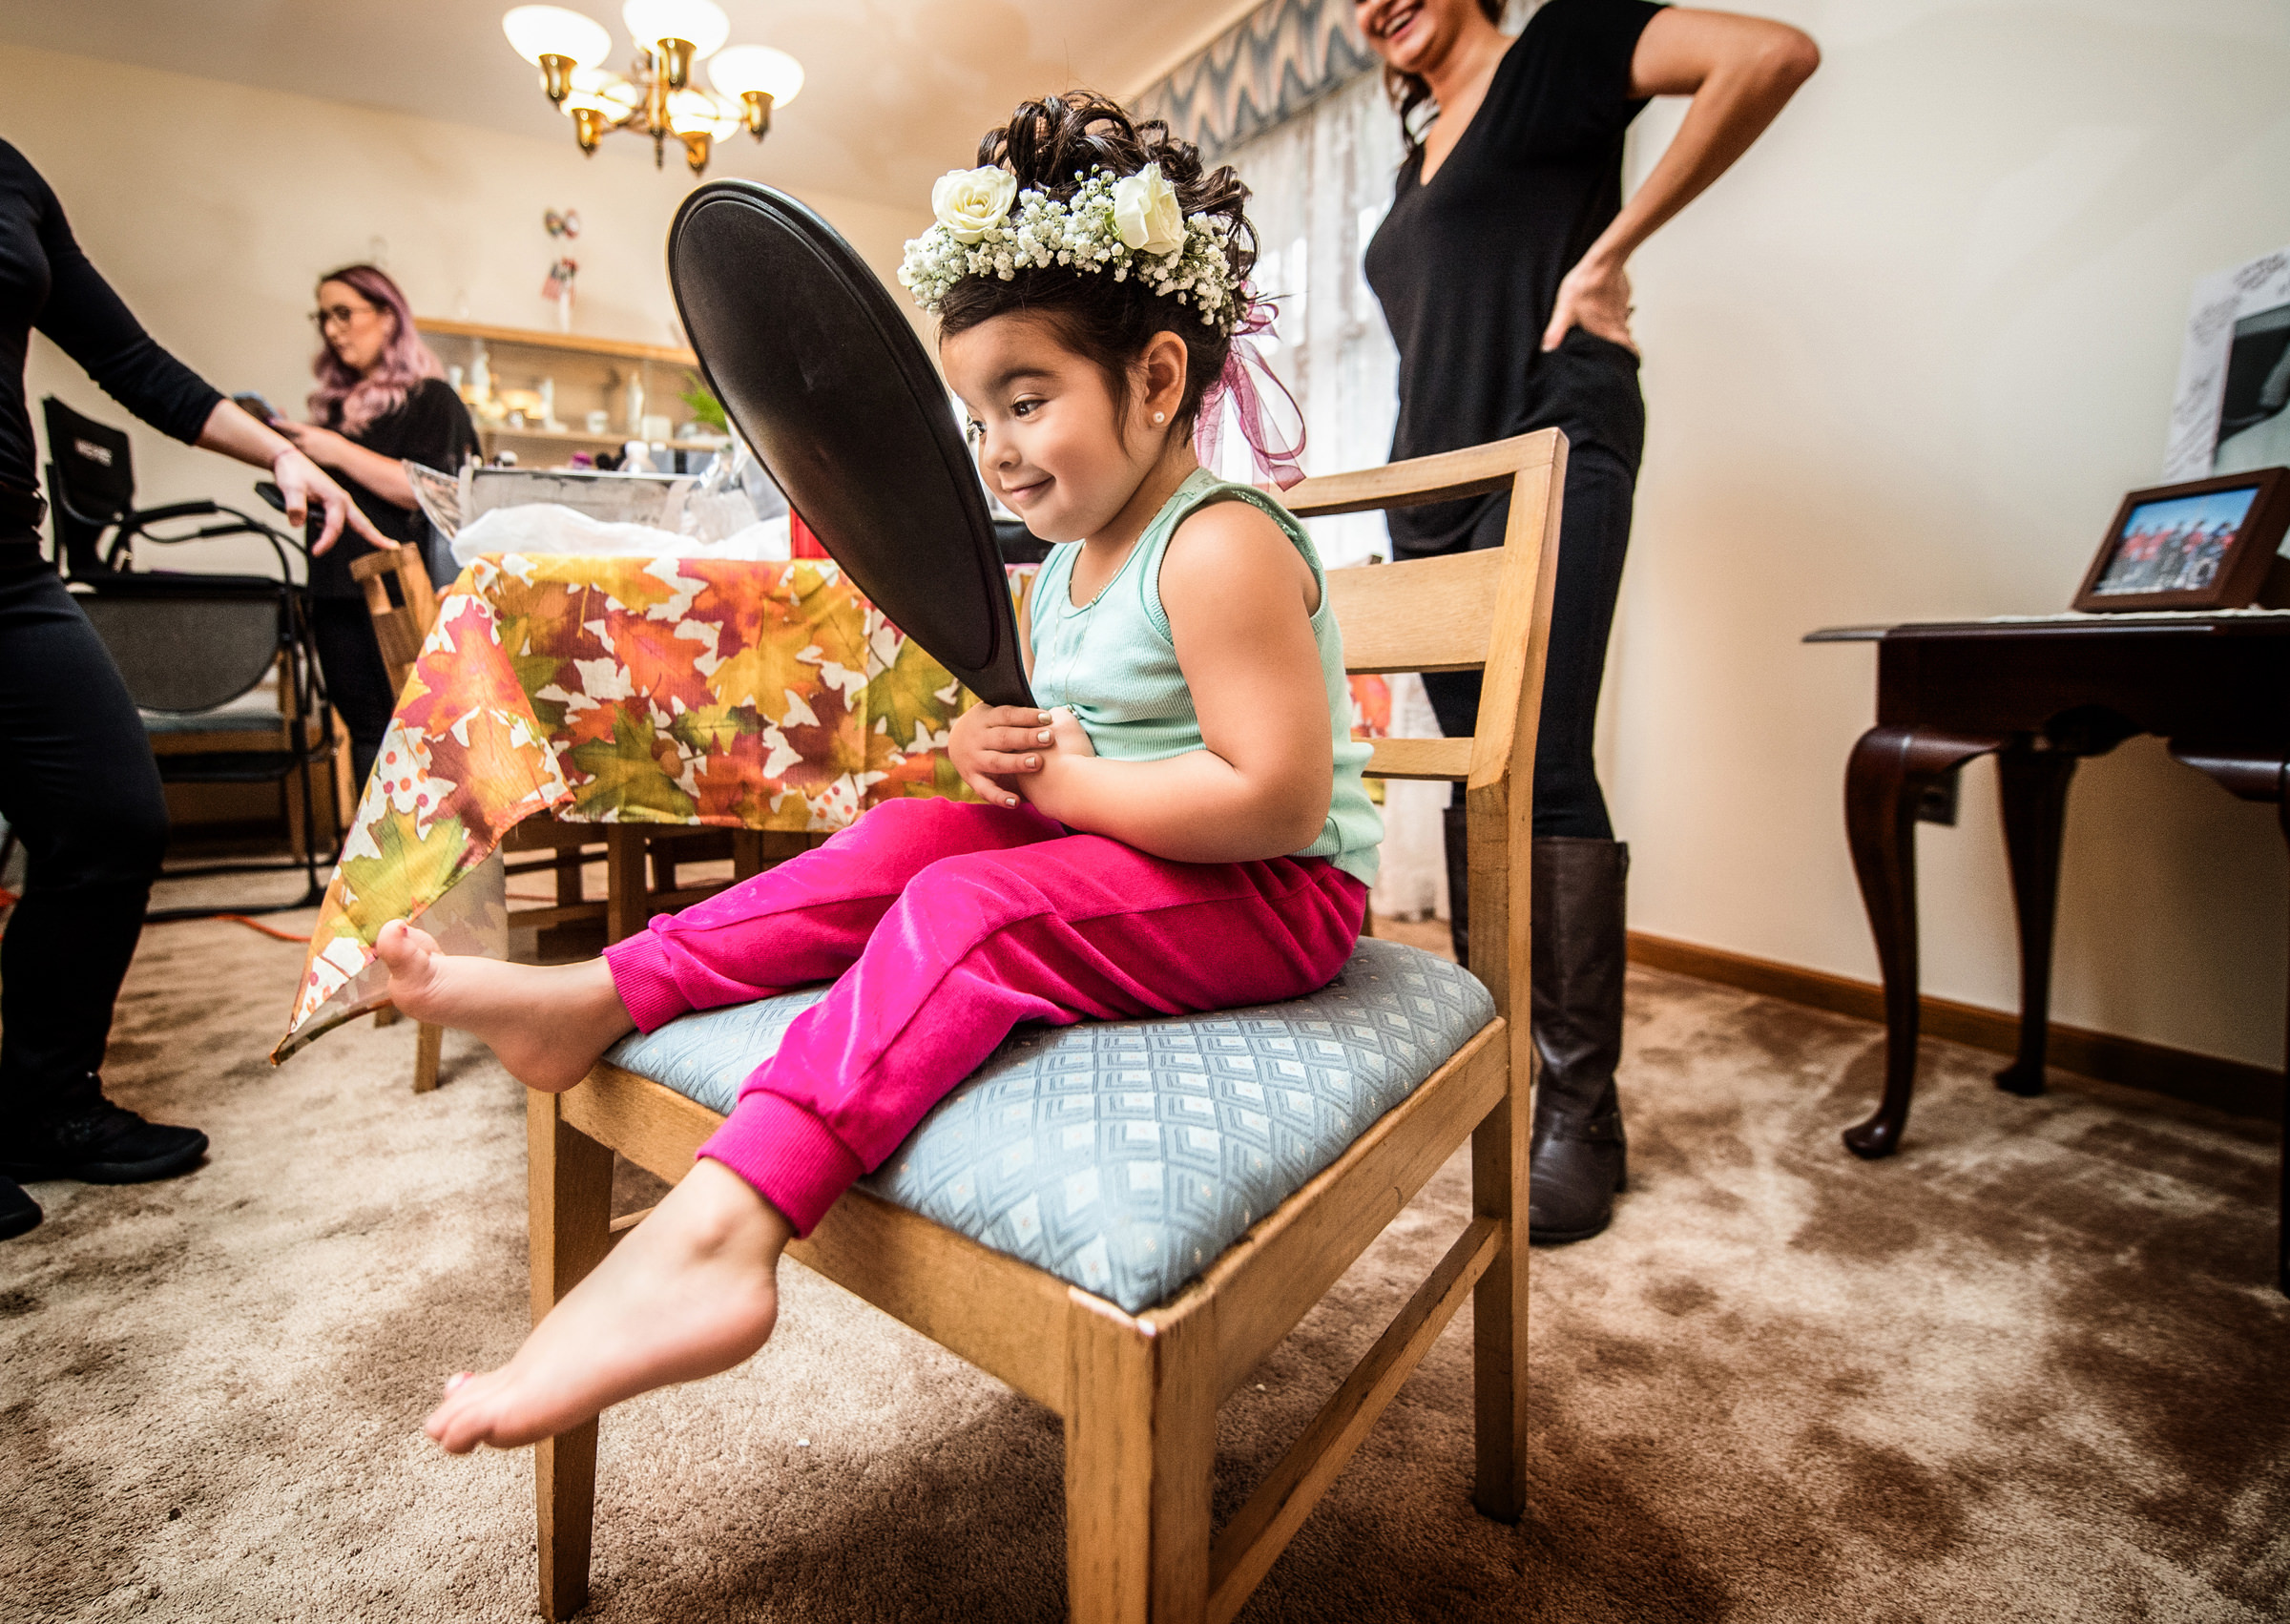 Flower girl admires her crown in the mirror - photo by Jeff Tisman Photography, New York